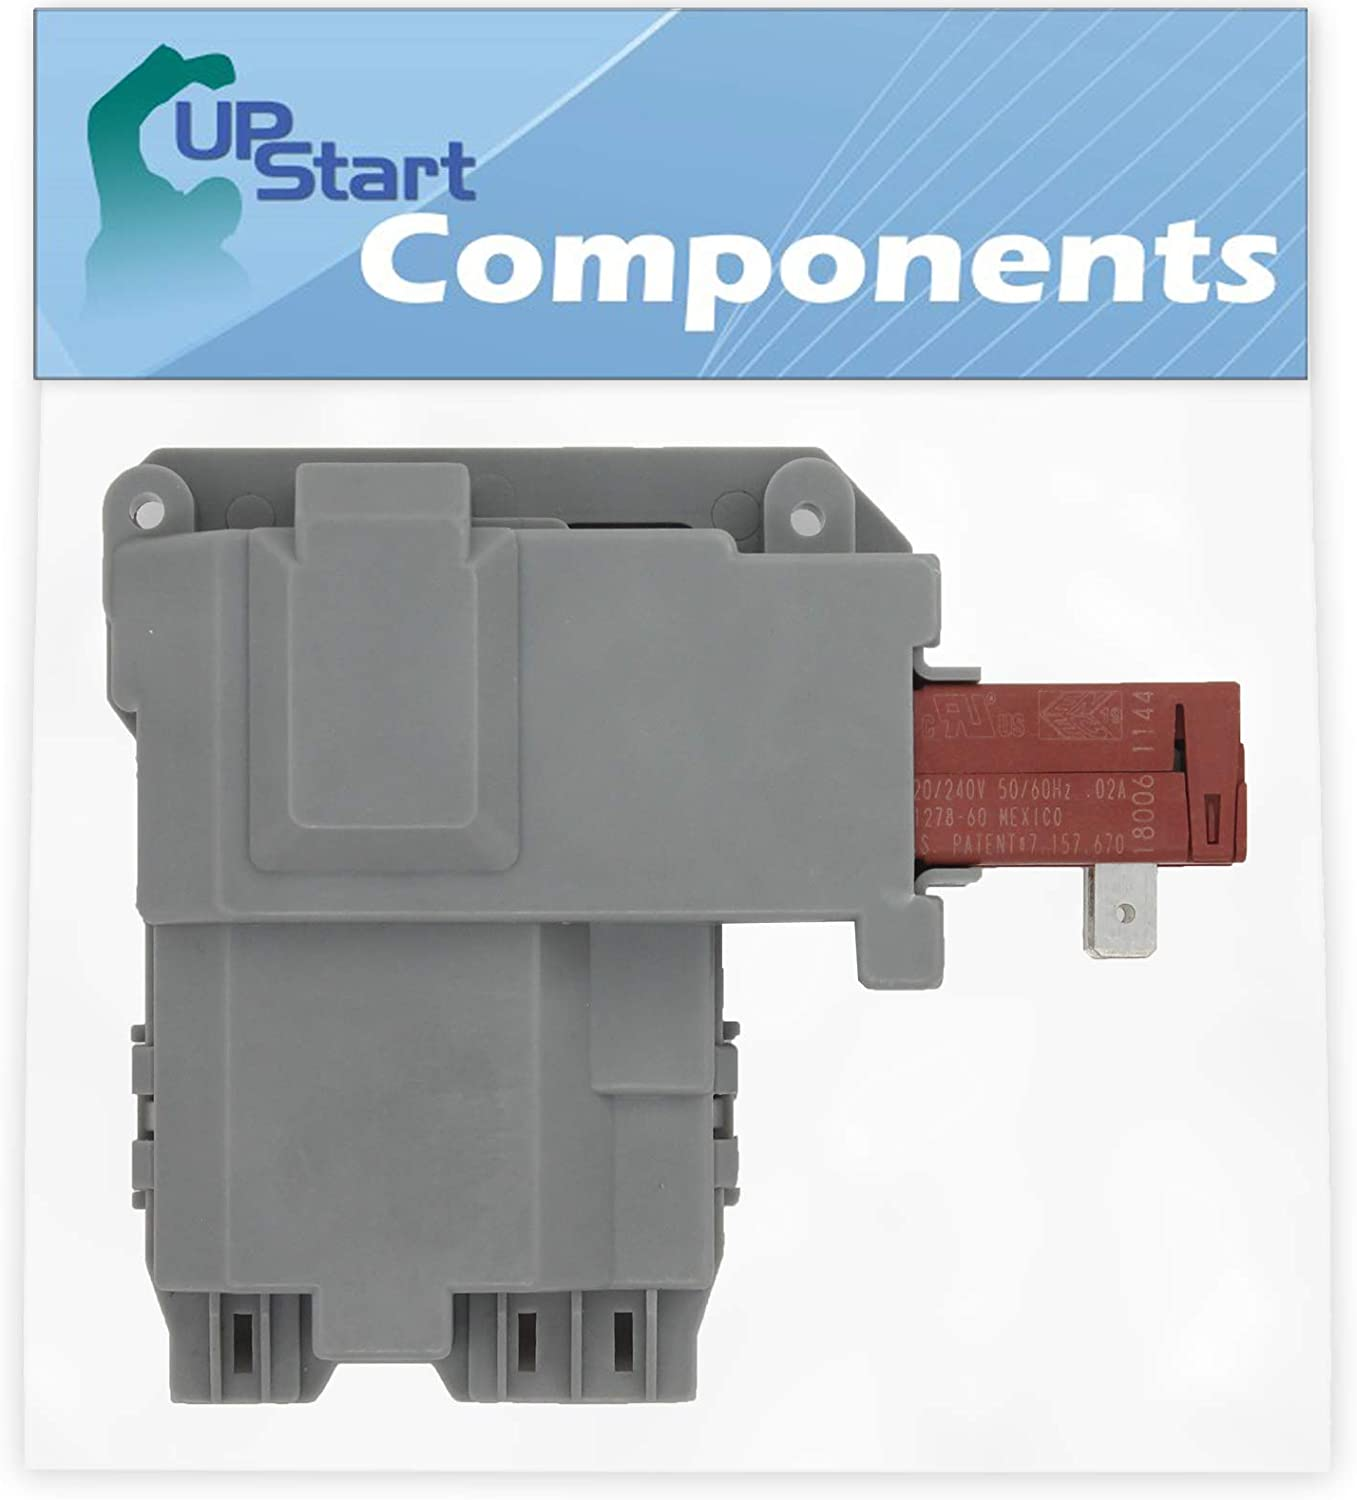 131763202 Washer Door Latch Replacement for Frigidaire GLTF2940ES0 Washing Machine UpStart Components Brand Compatible with 131763202 Door Lock Switch